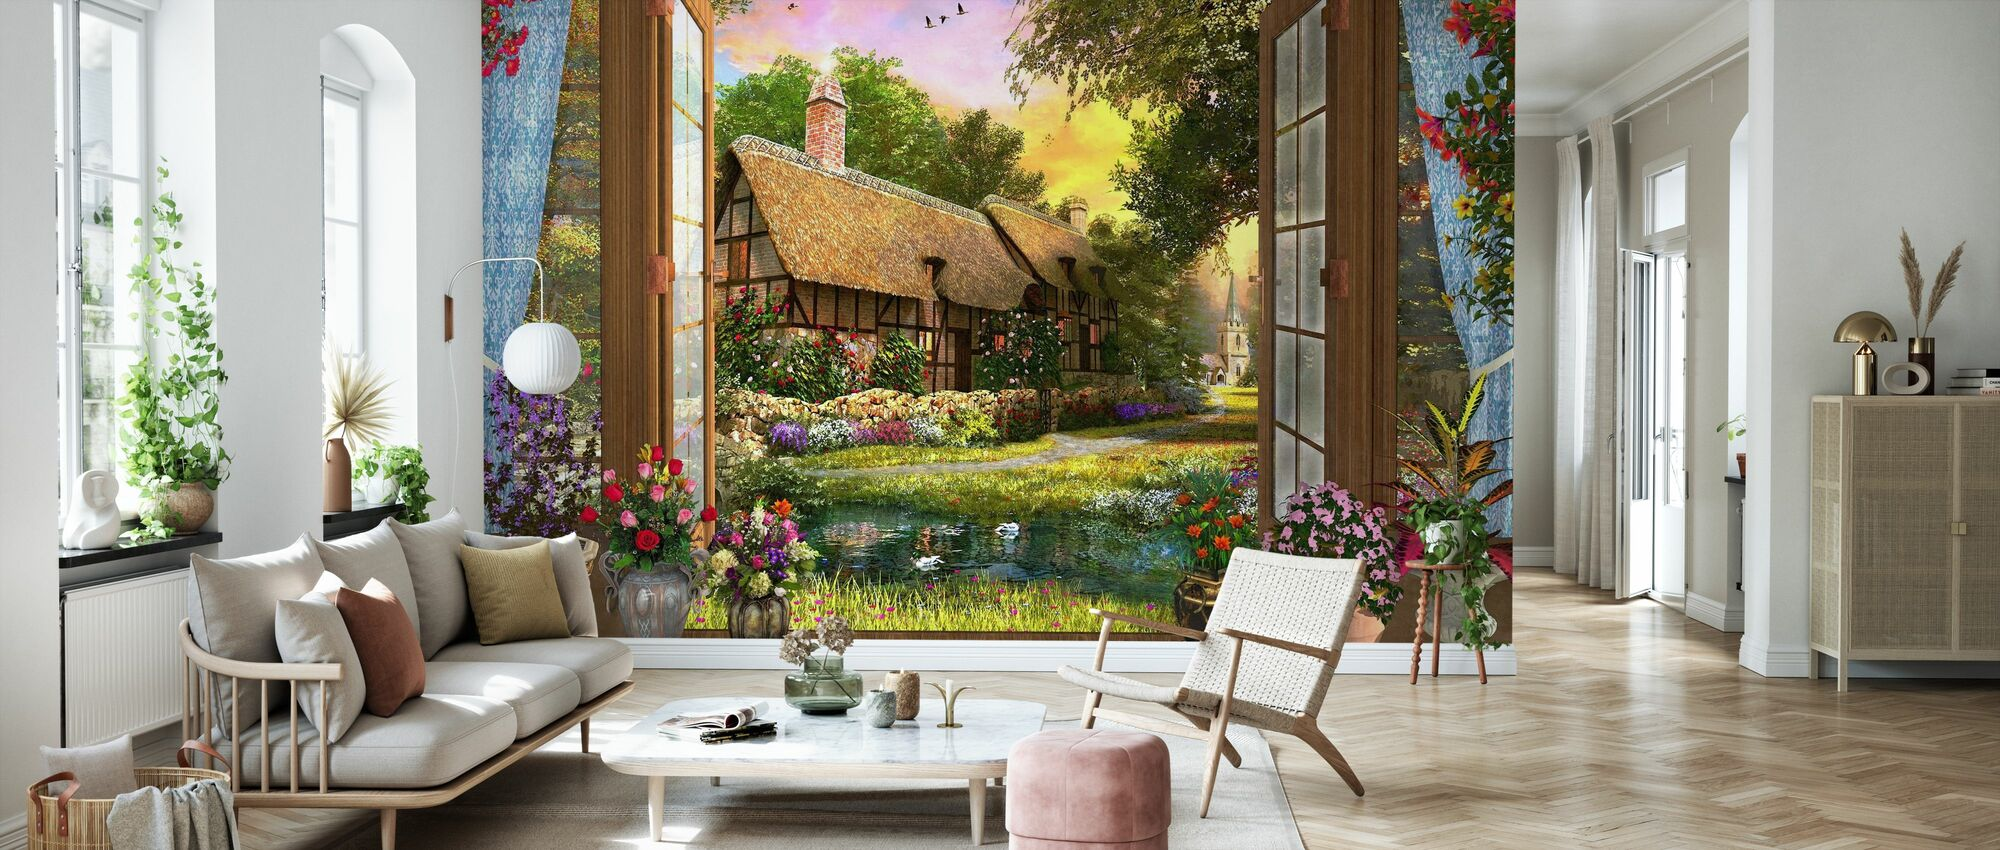 Cottage View Sunset - Wallpaper - Living Room